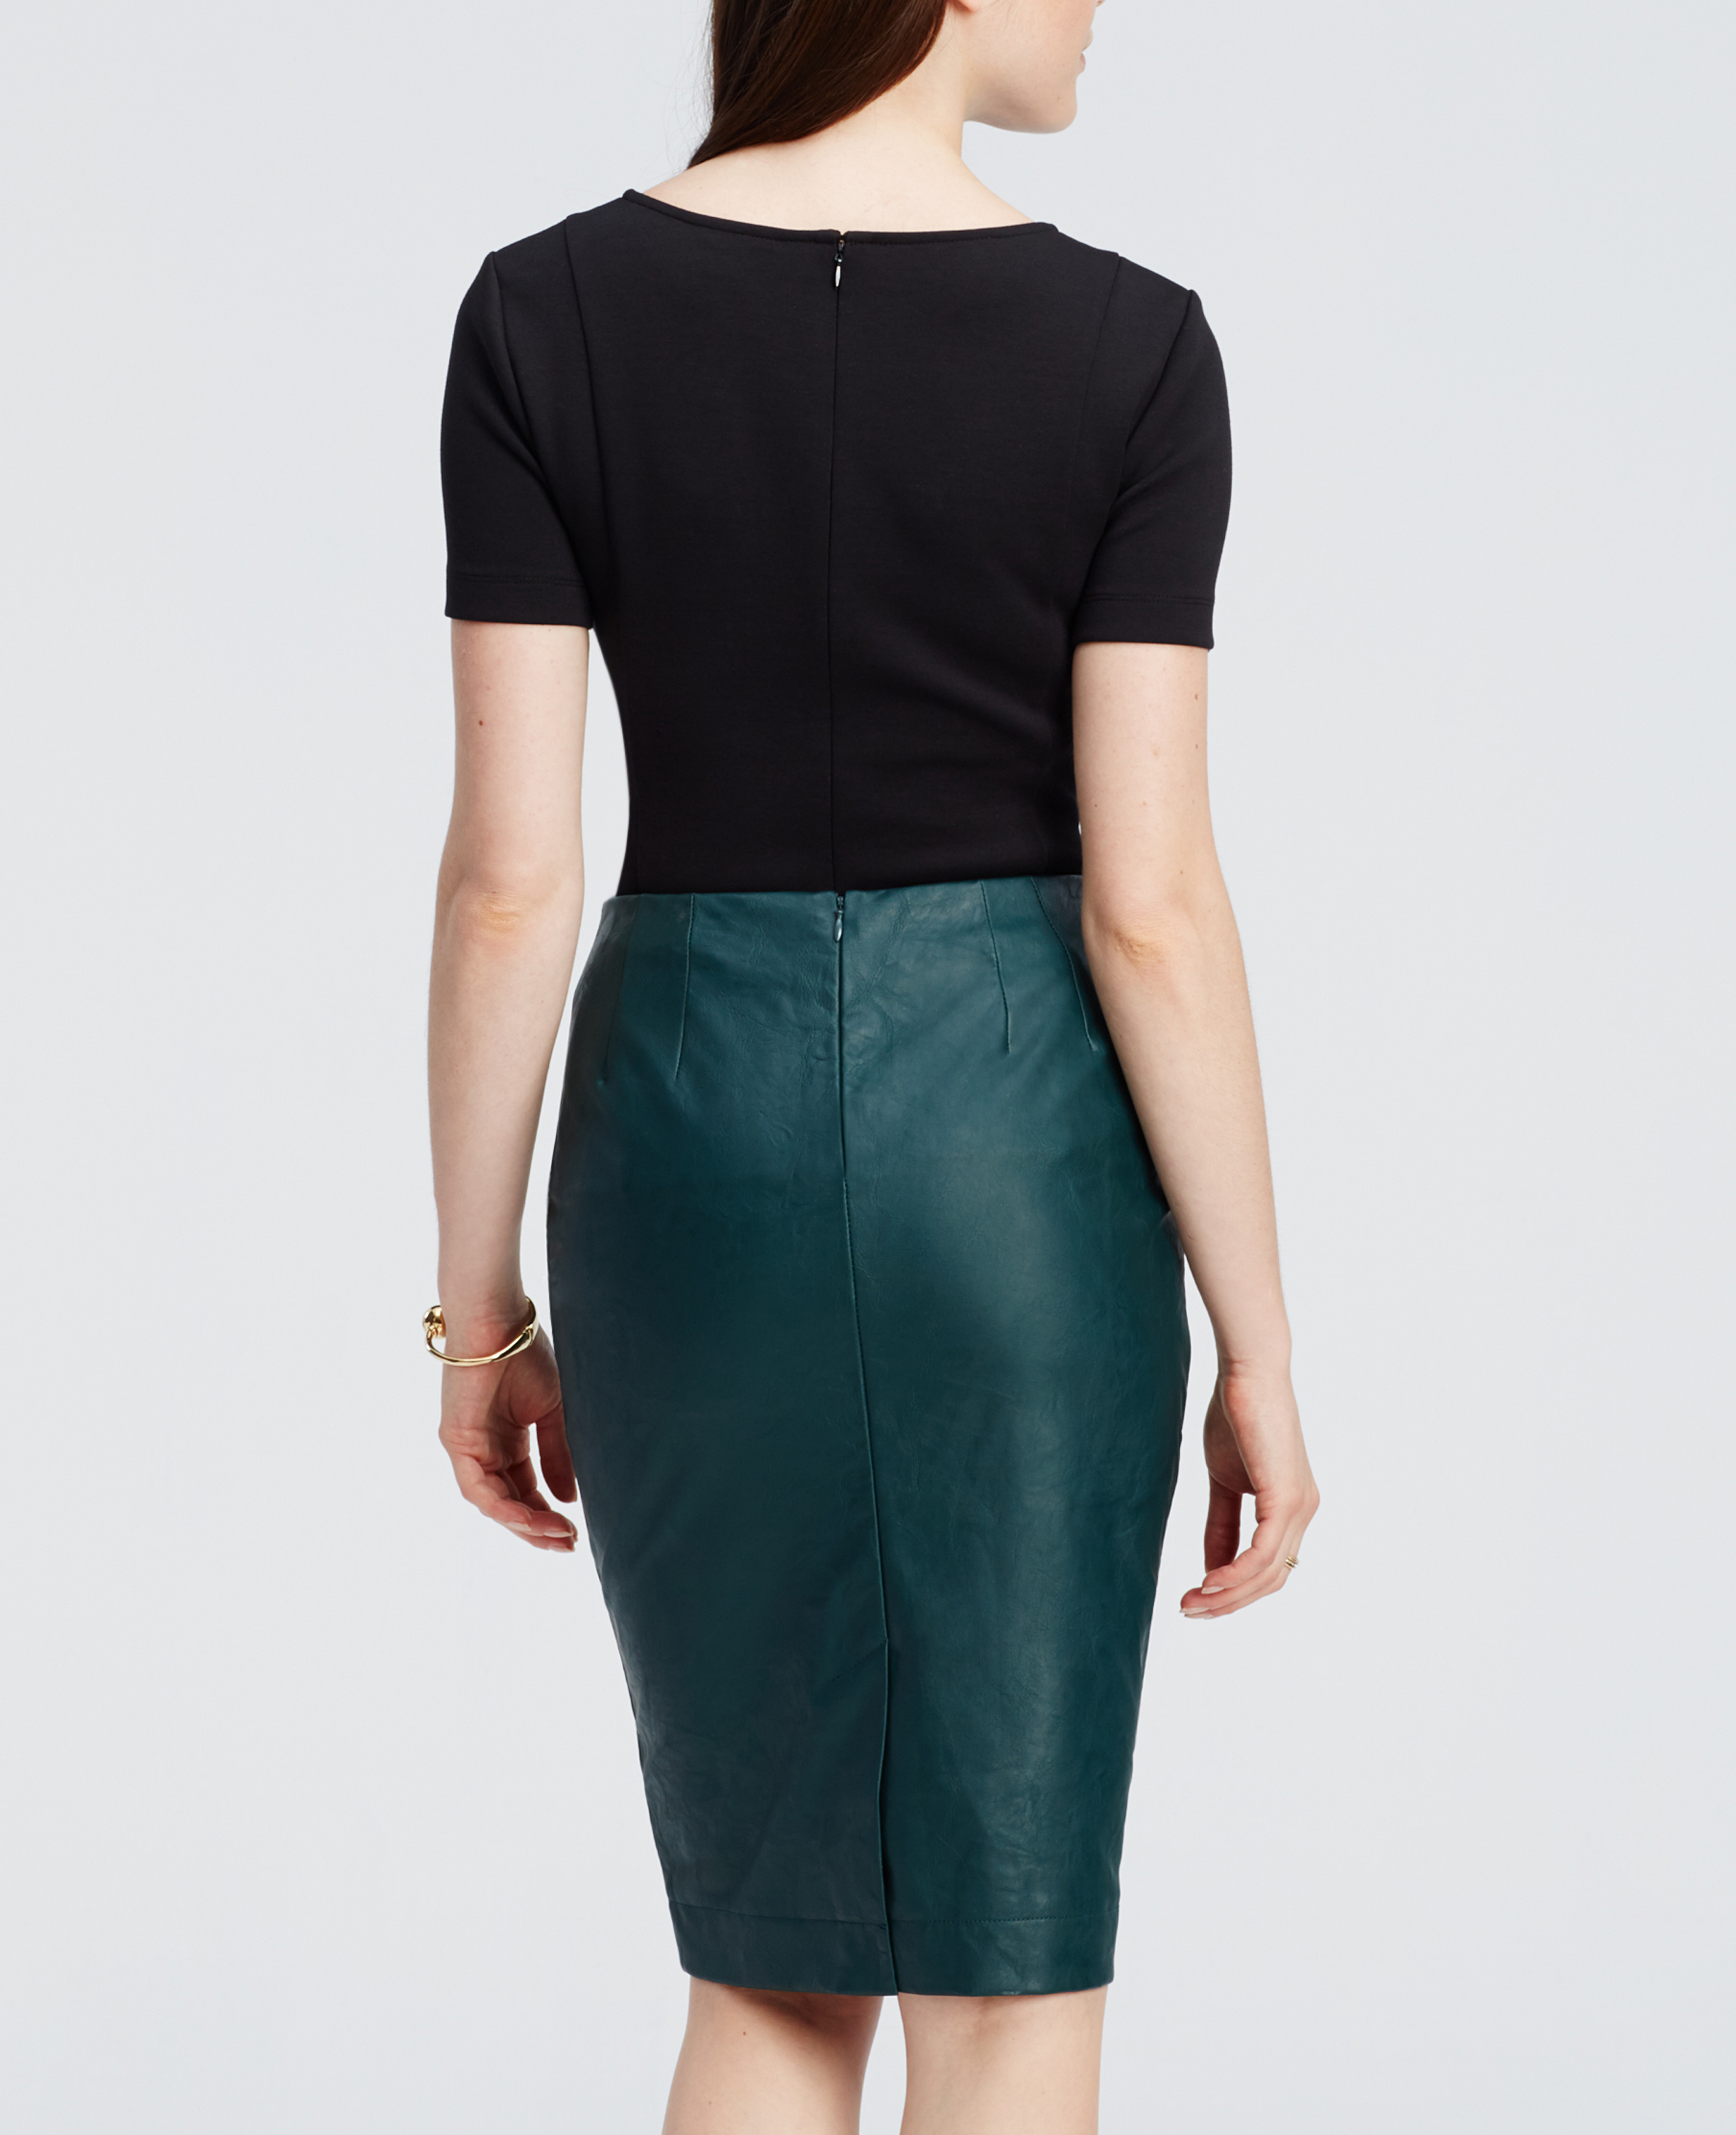 Ann taylor Faux Leather Pencil Skirt in Green | Lyst